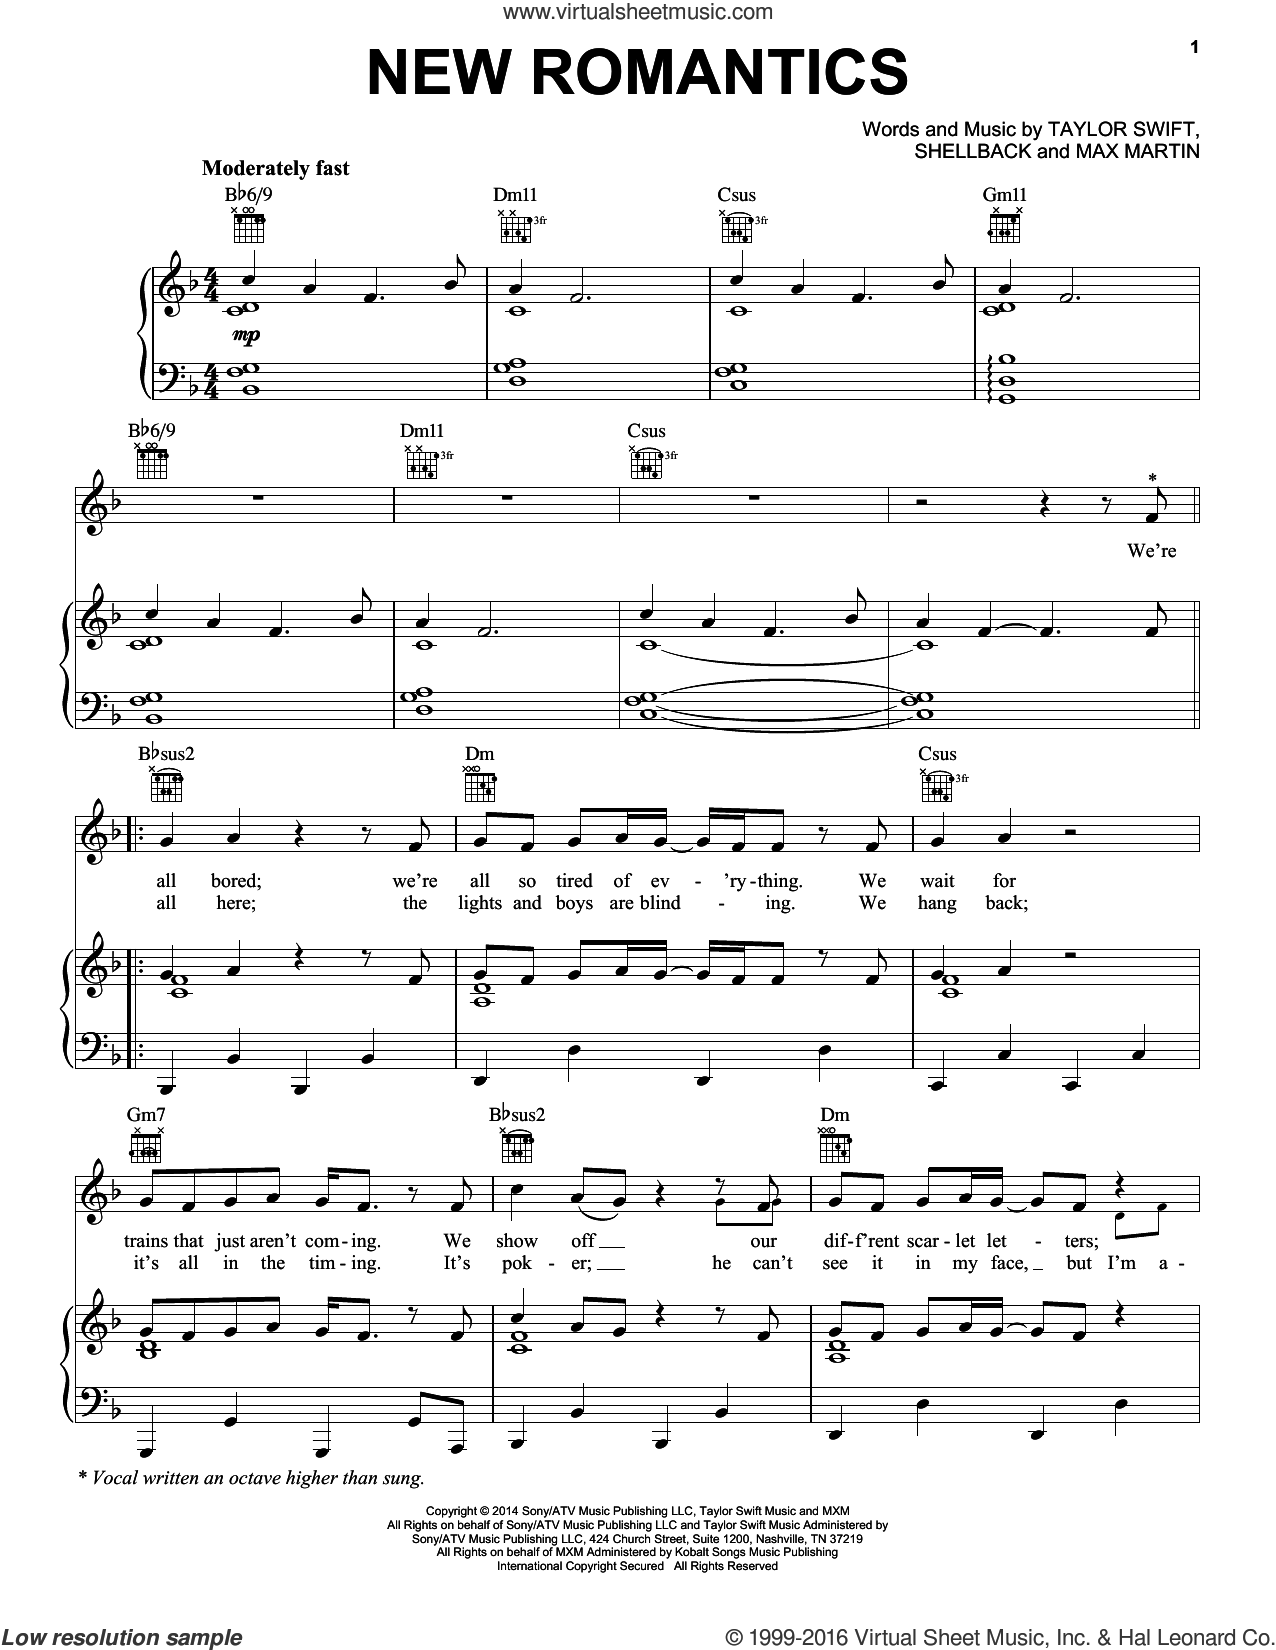 New Romantics sheet music for voice, piano or guitar by Taylor Swift, Max Martin and Shellback, intermediate skill level